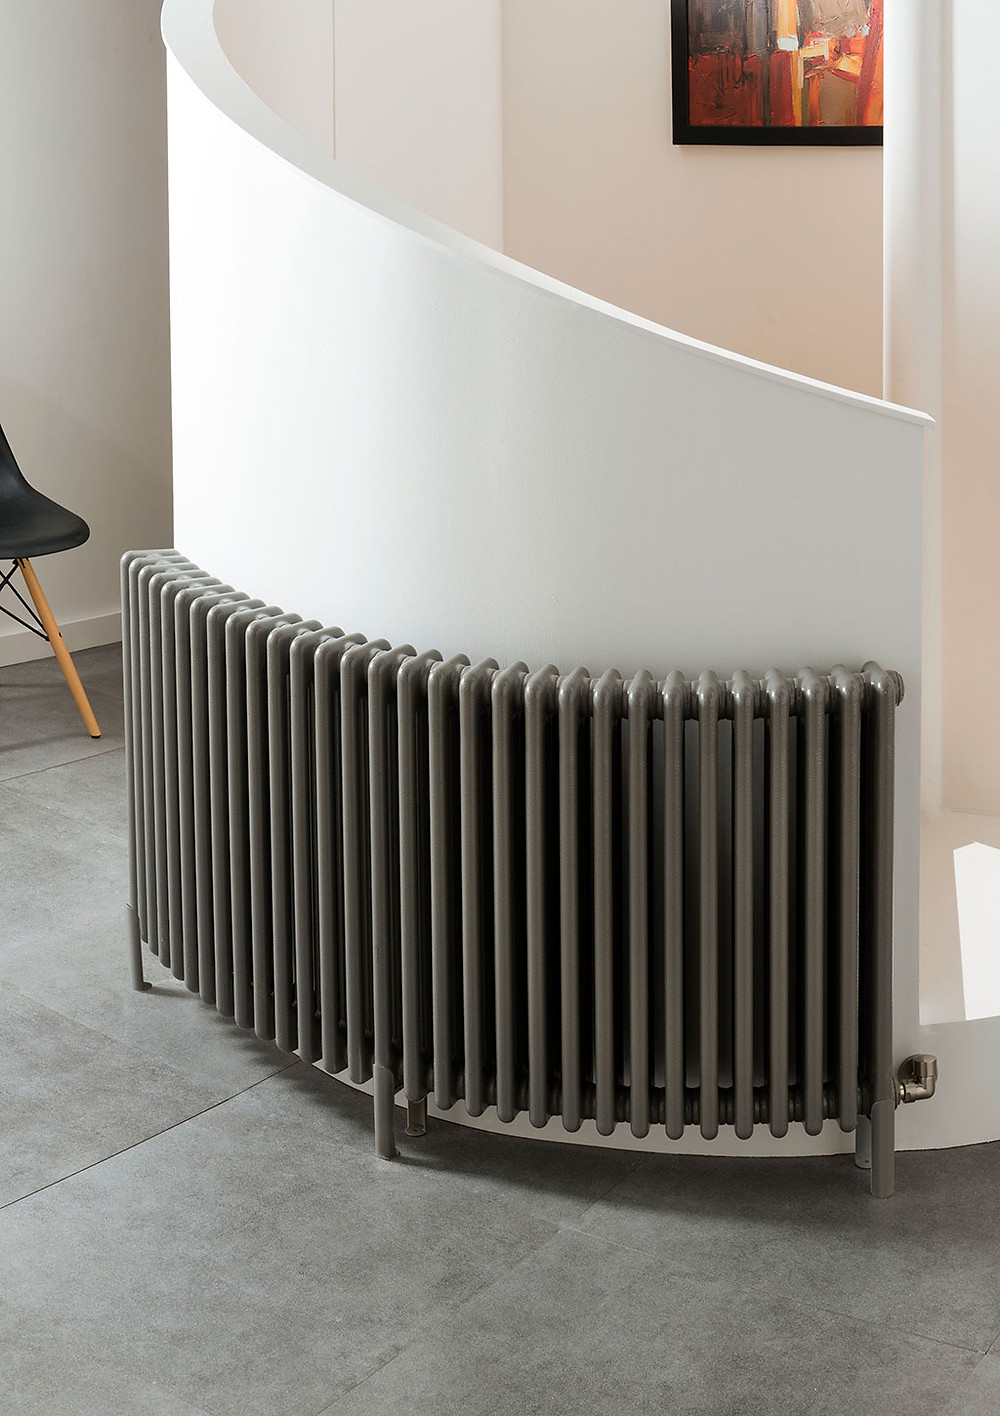 curved radiator framing a wall around a staircase